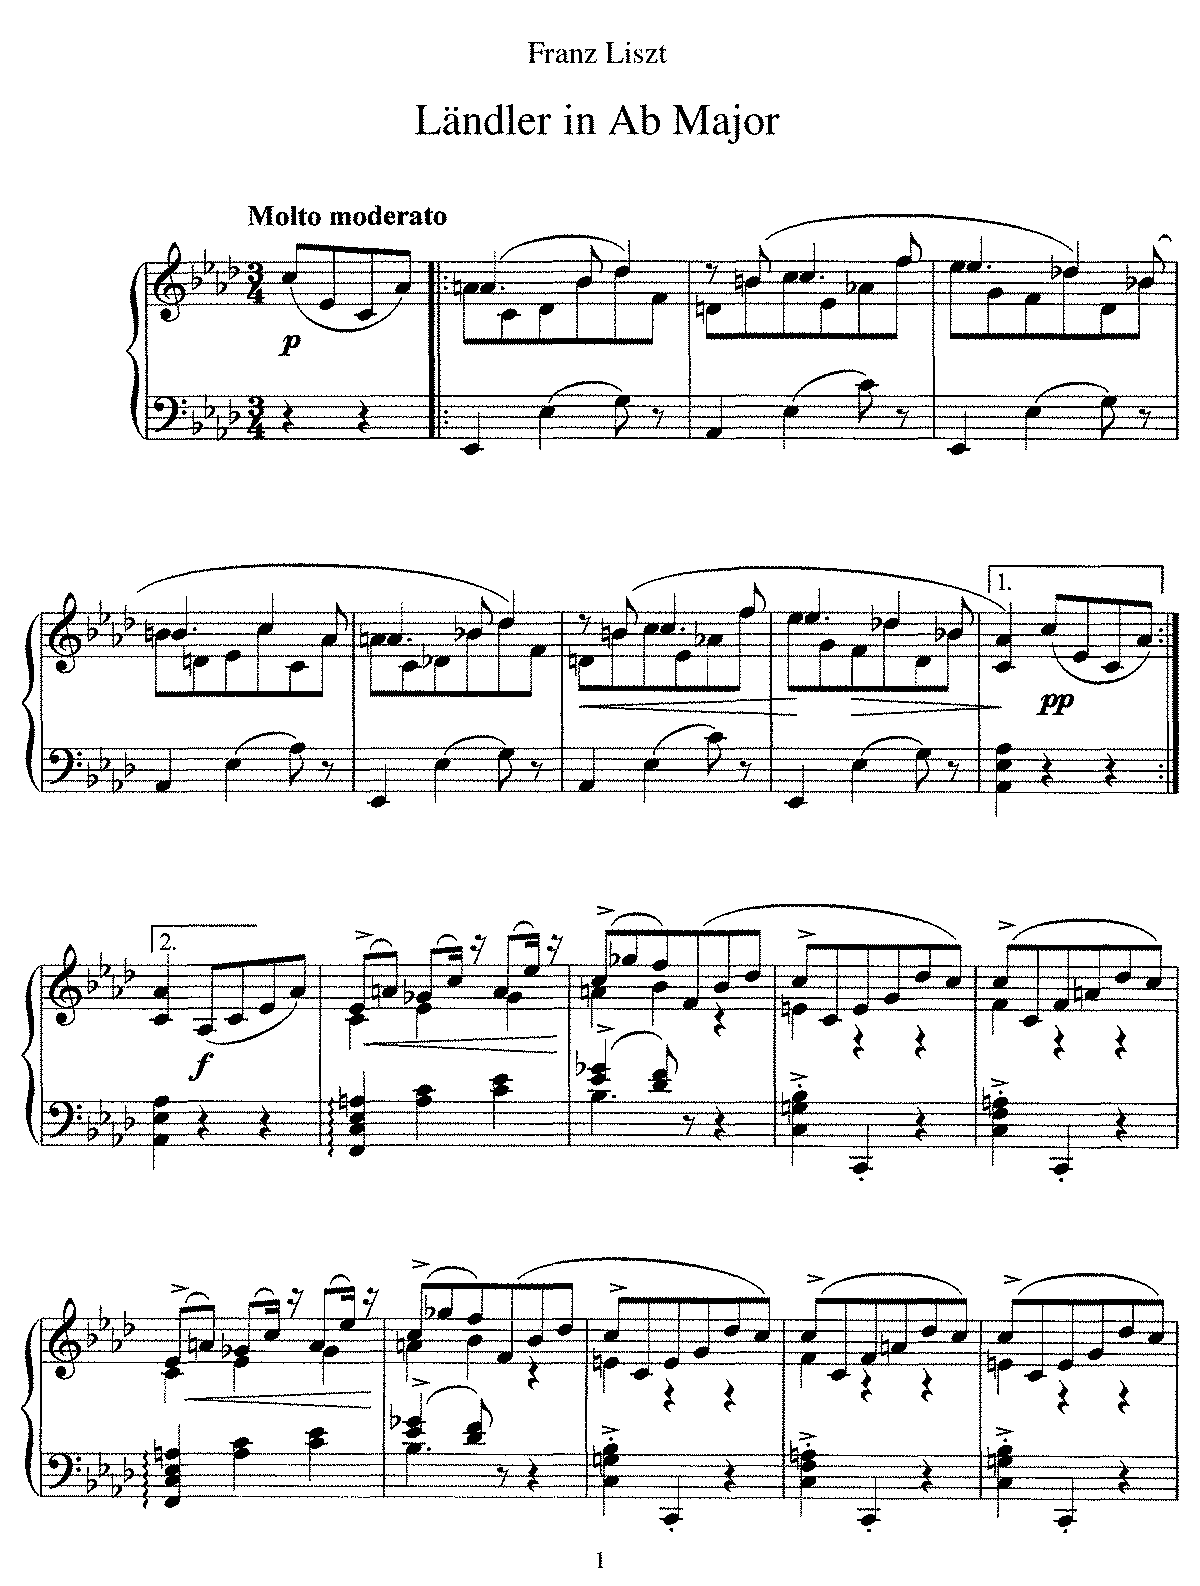 Liszt - S211 Länder in A flat major.pdf